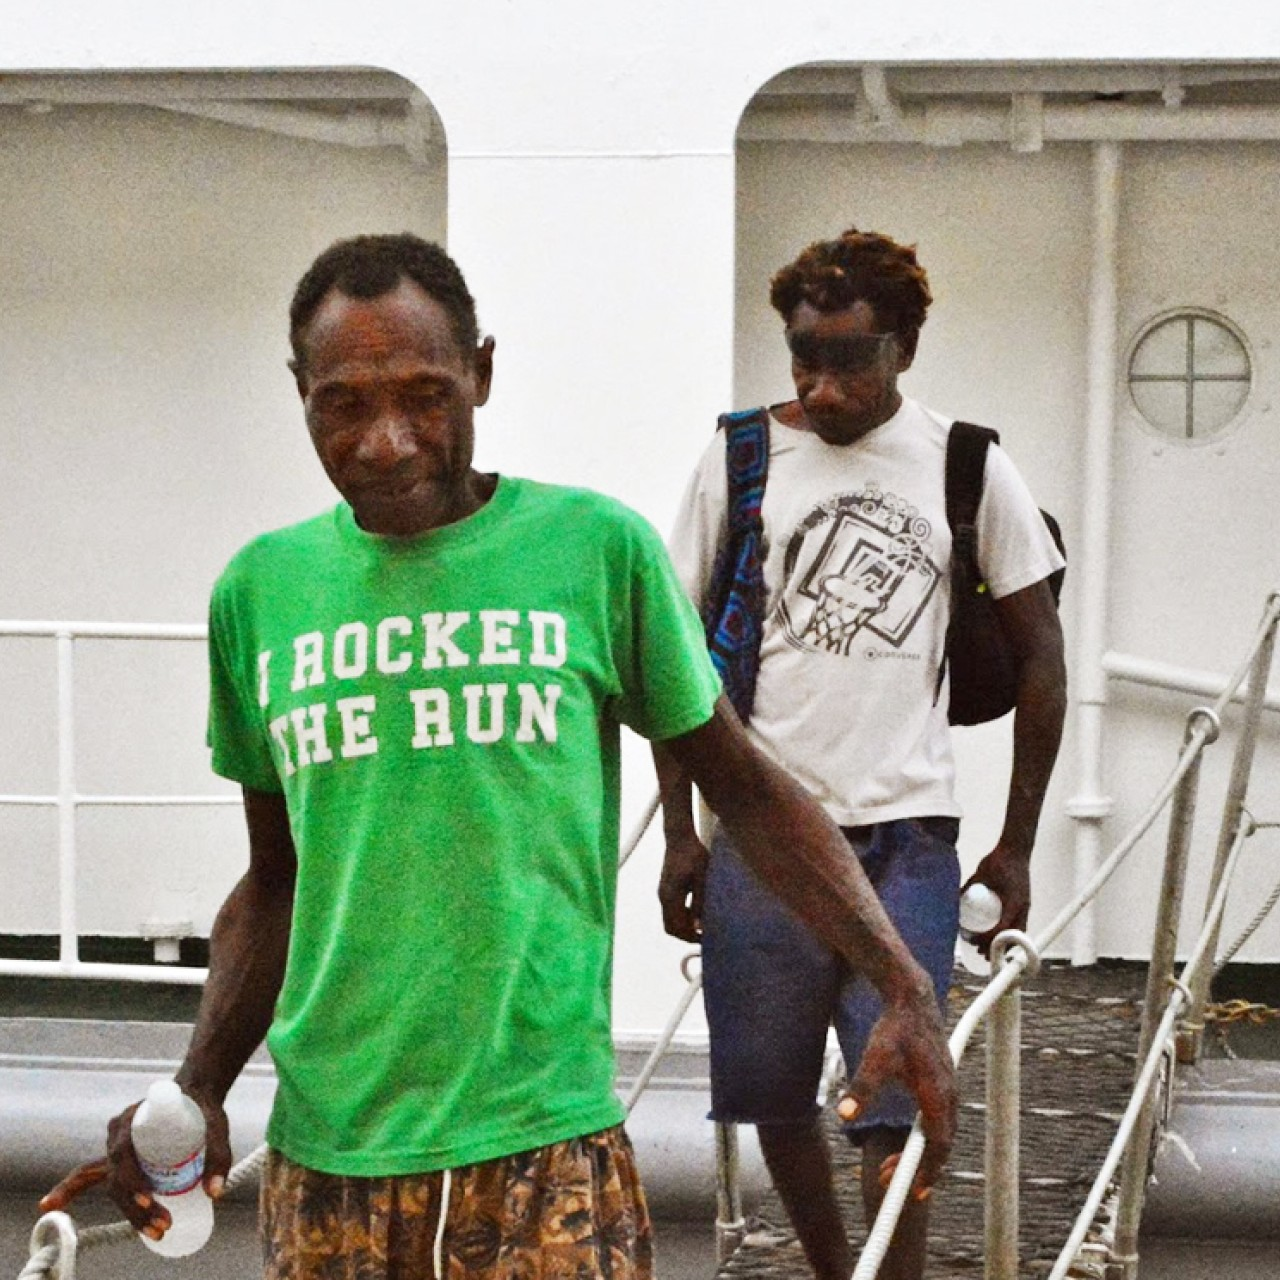 Papua New Guinea fishermen who survived three months adrift at sea